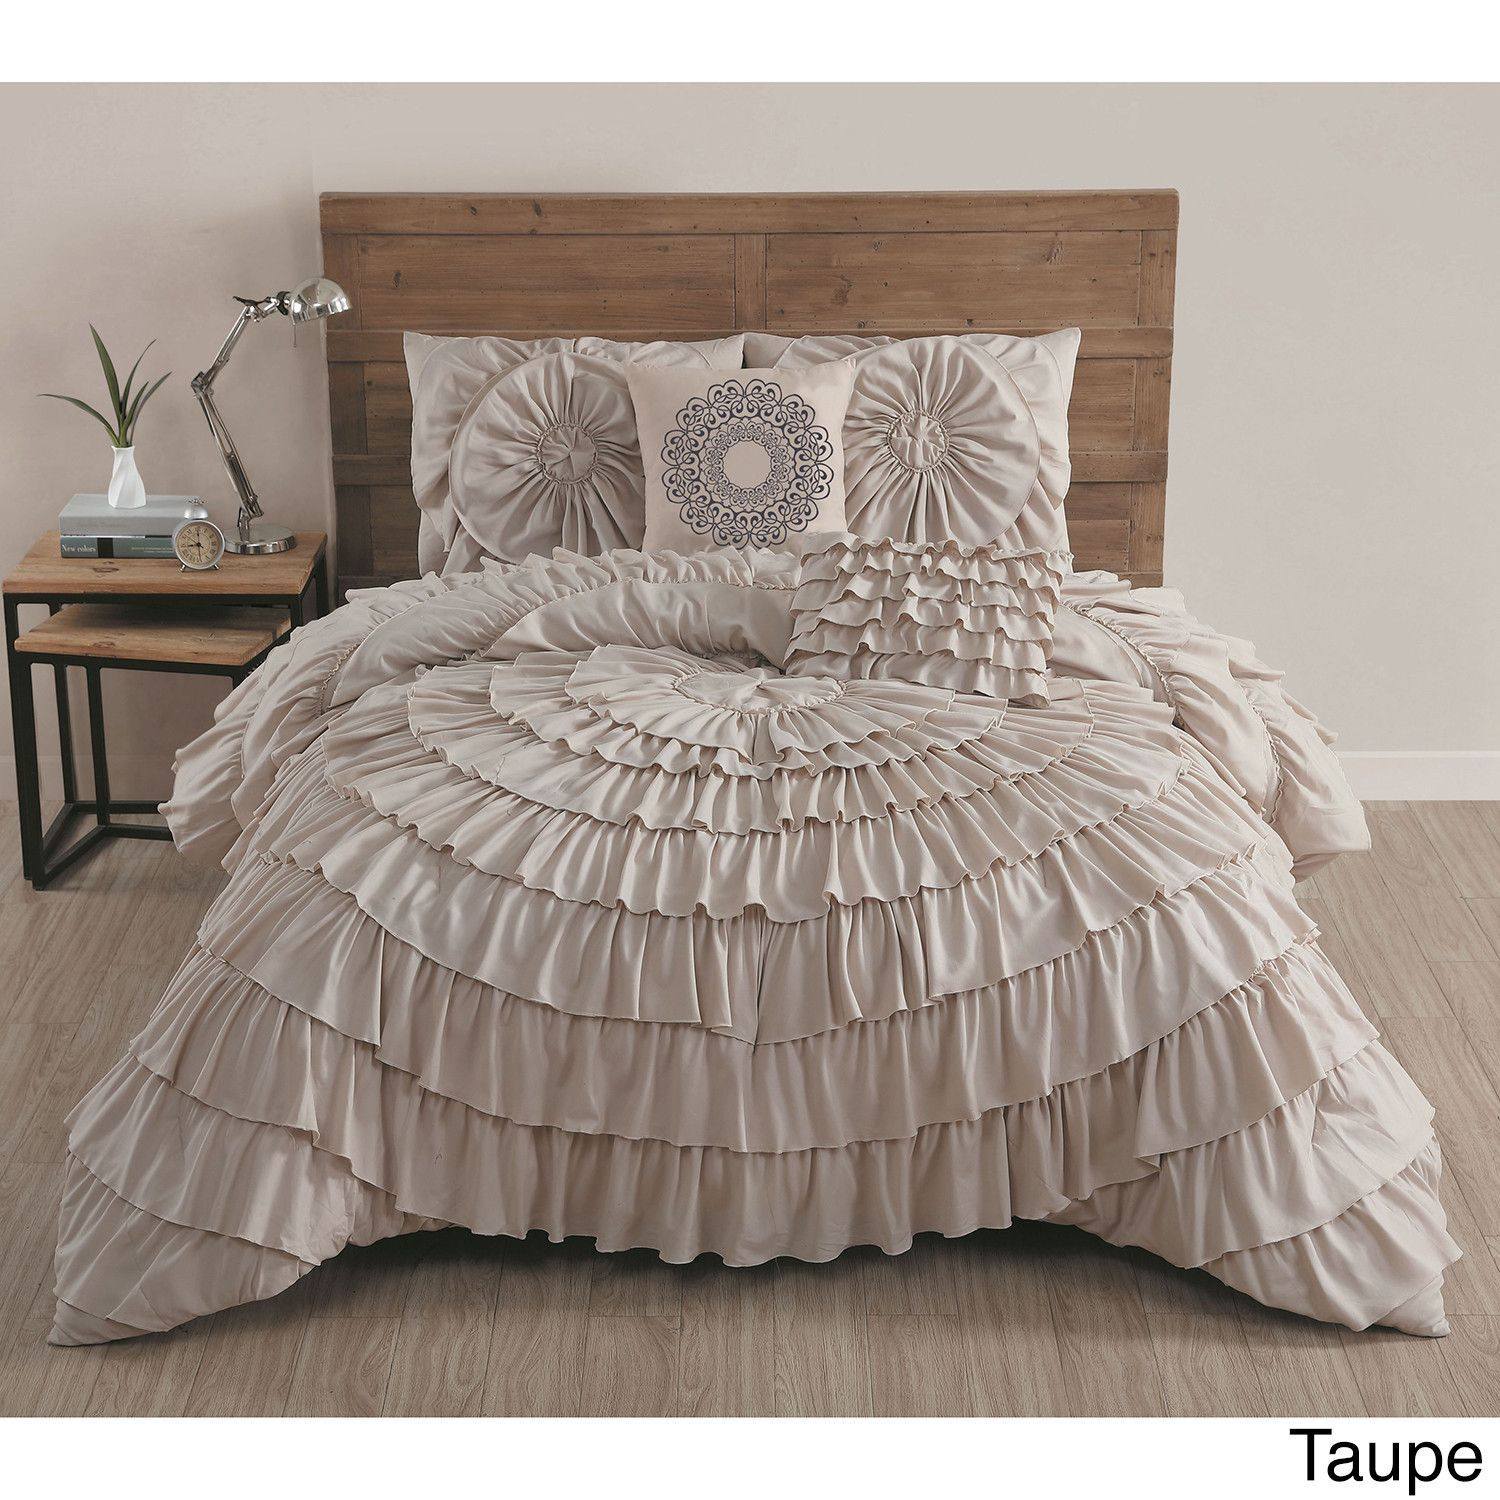 Azalee Romantic Ruffled 5 PC forter Bedding Set